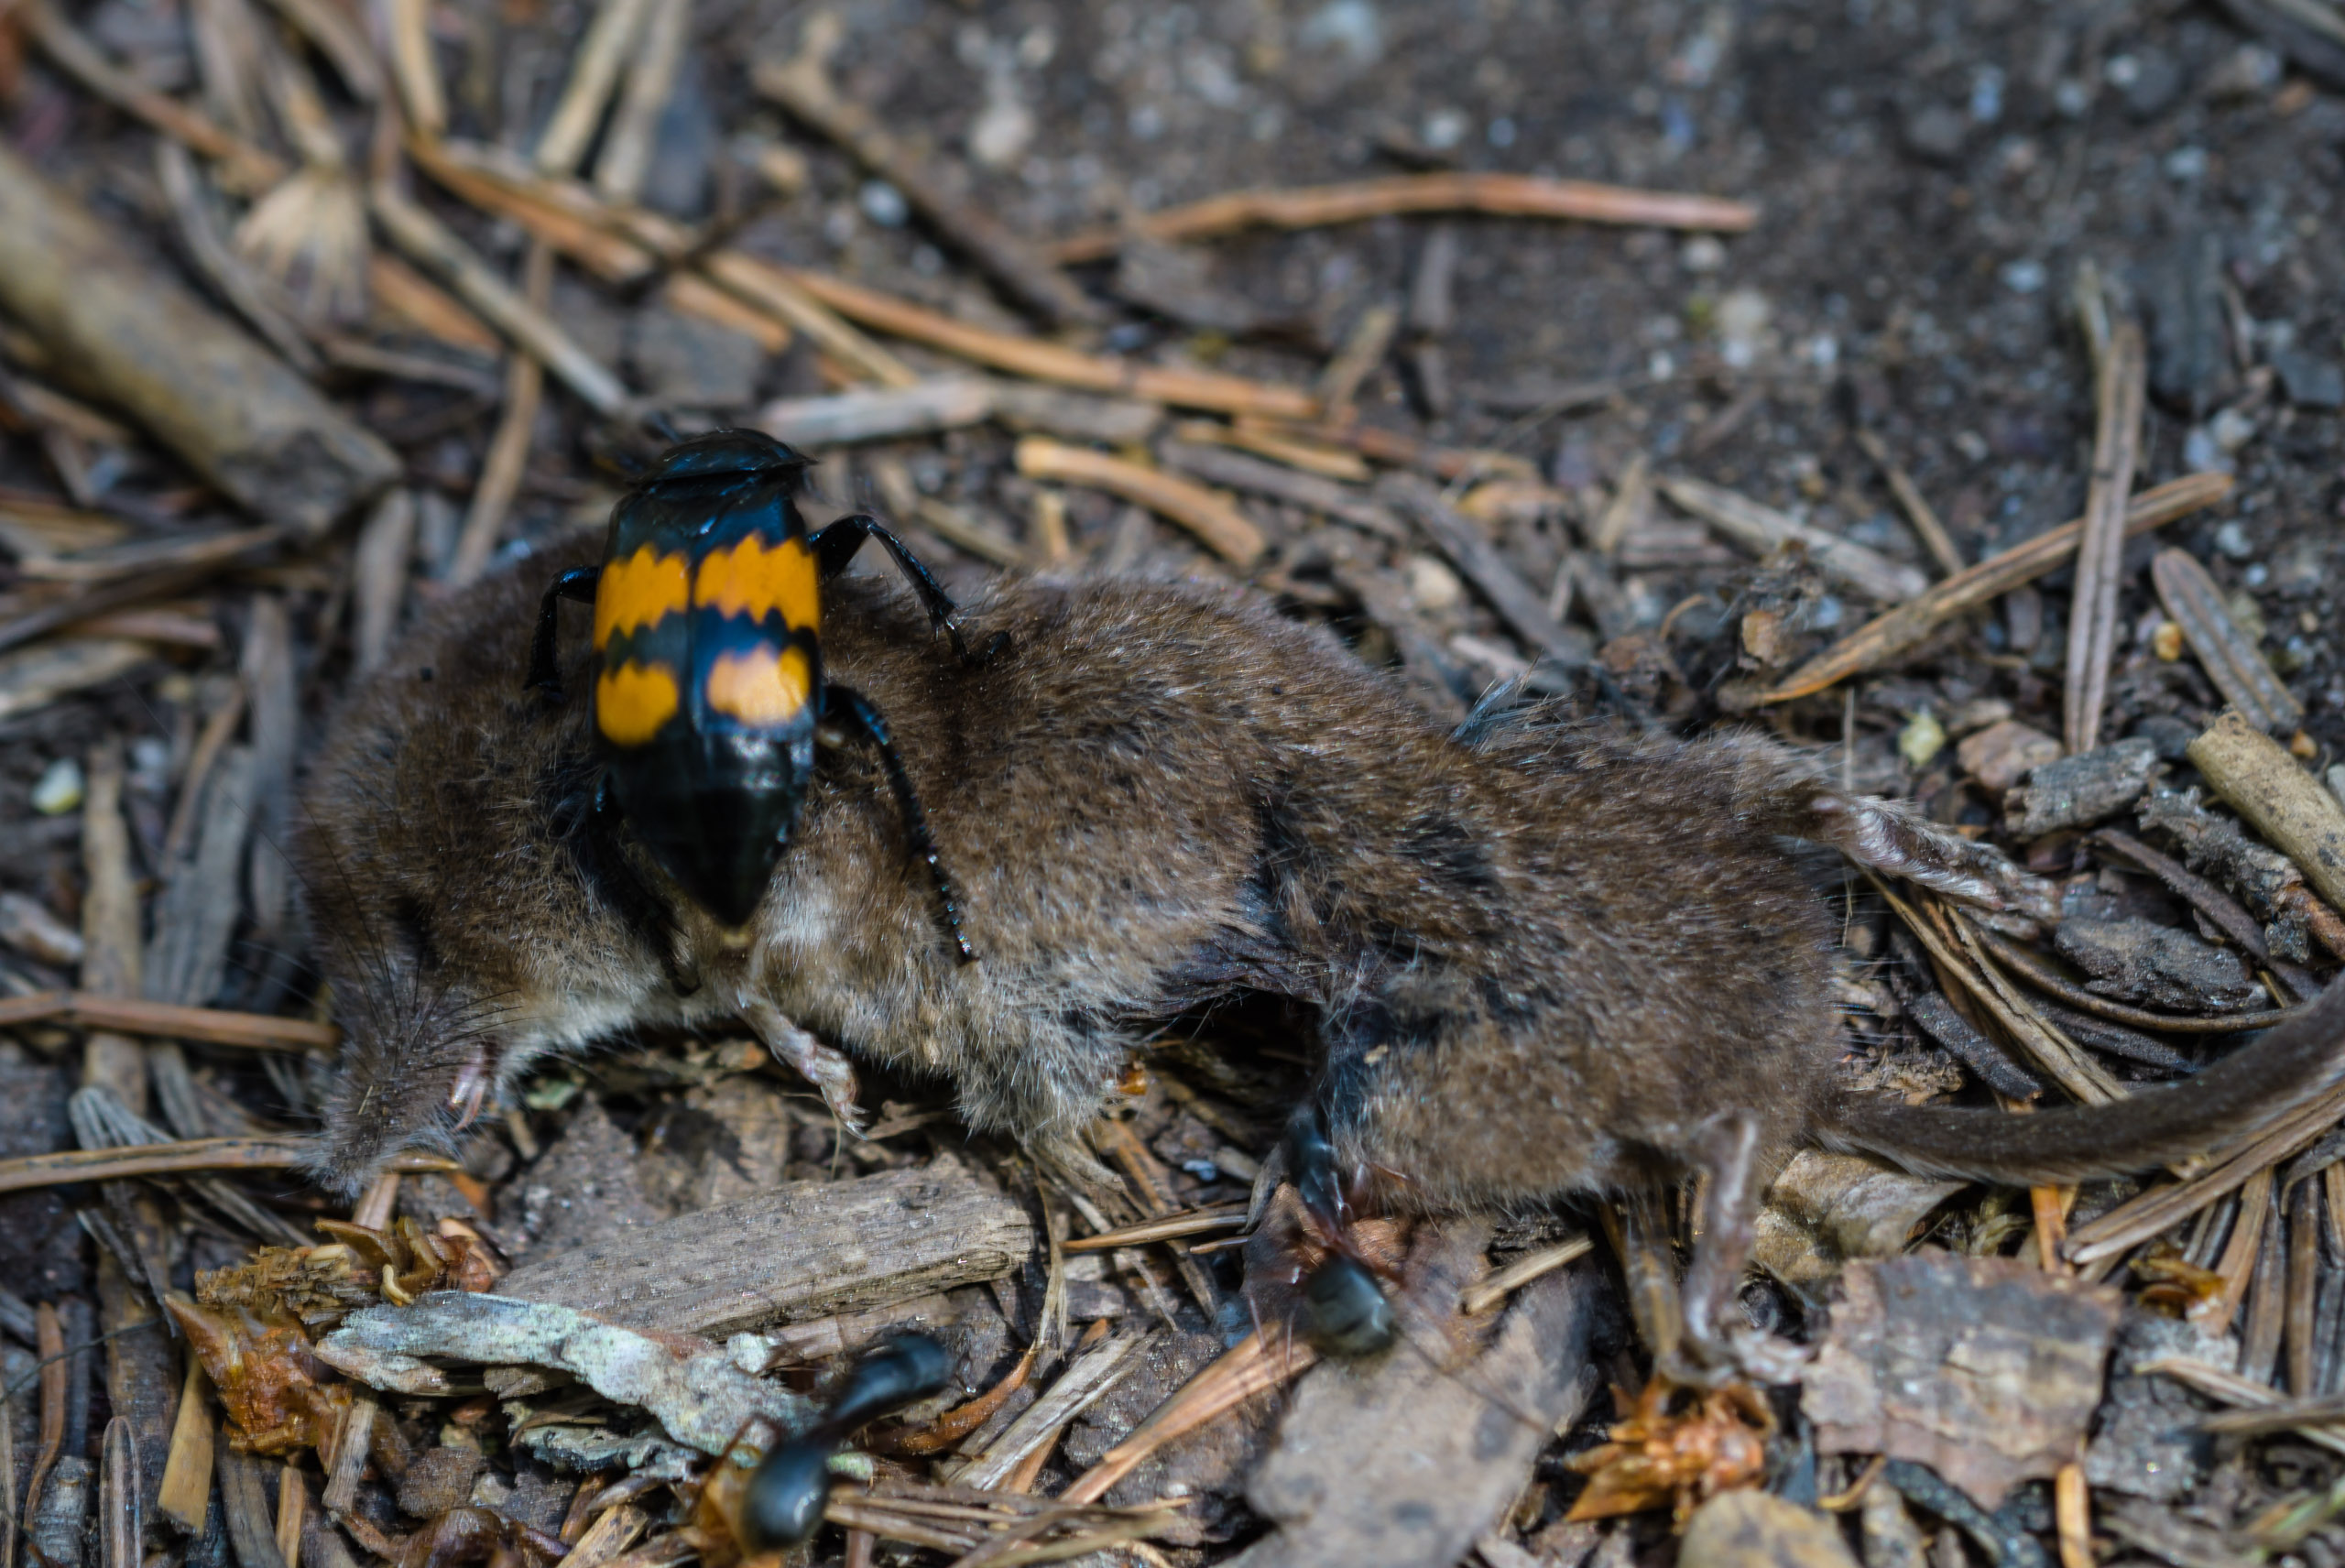 A recently passed Vagrant Shrew on a carrion beetle